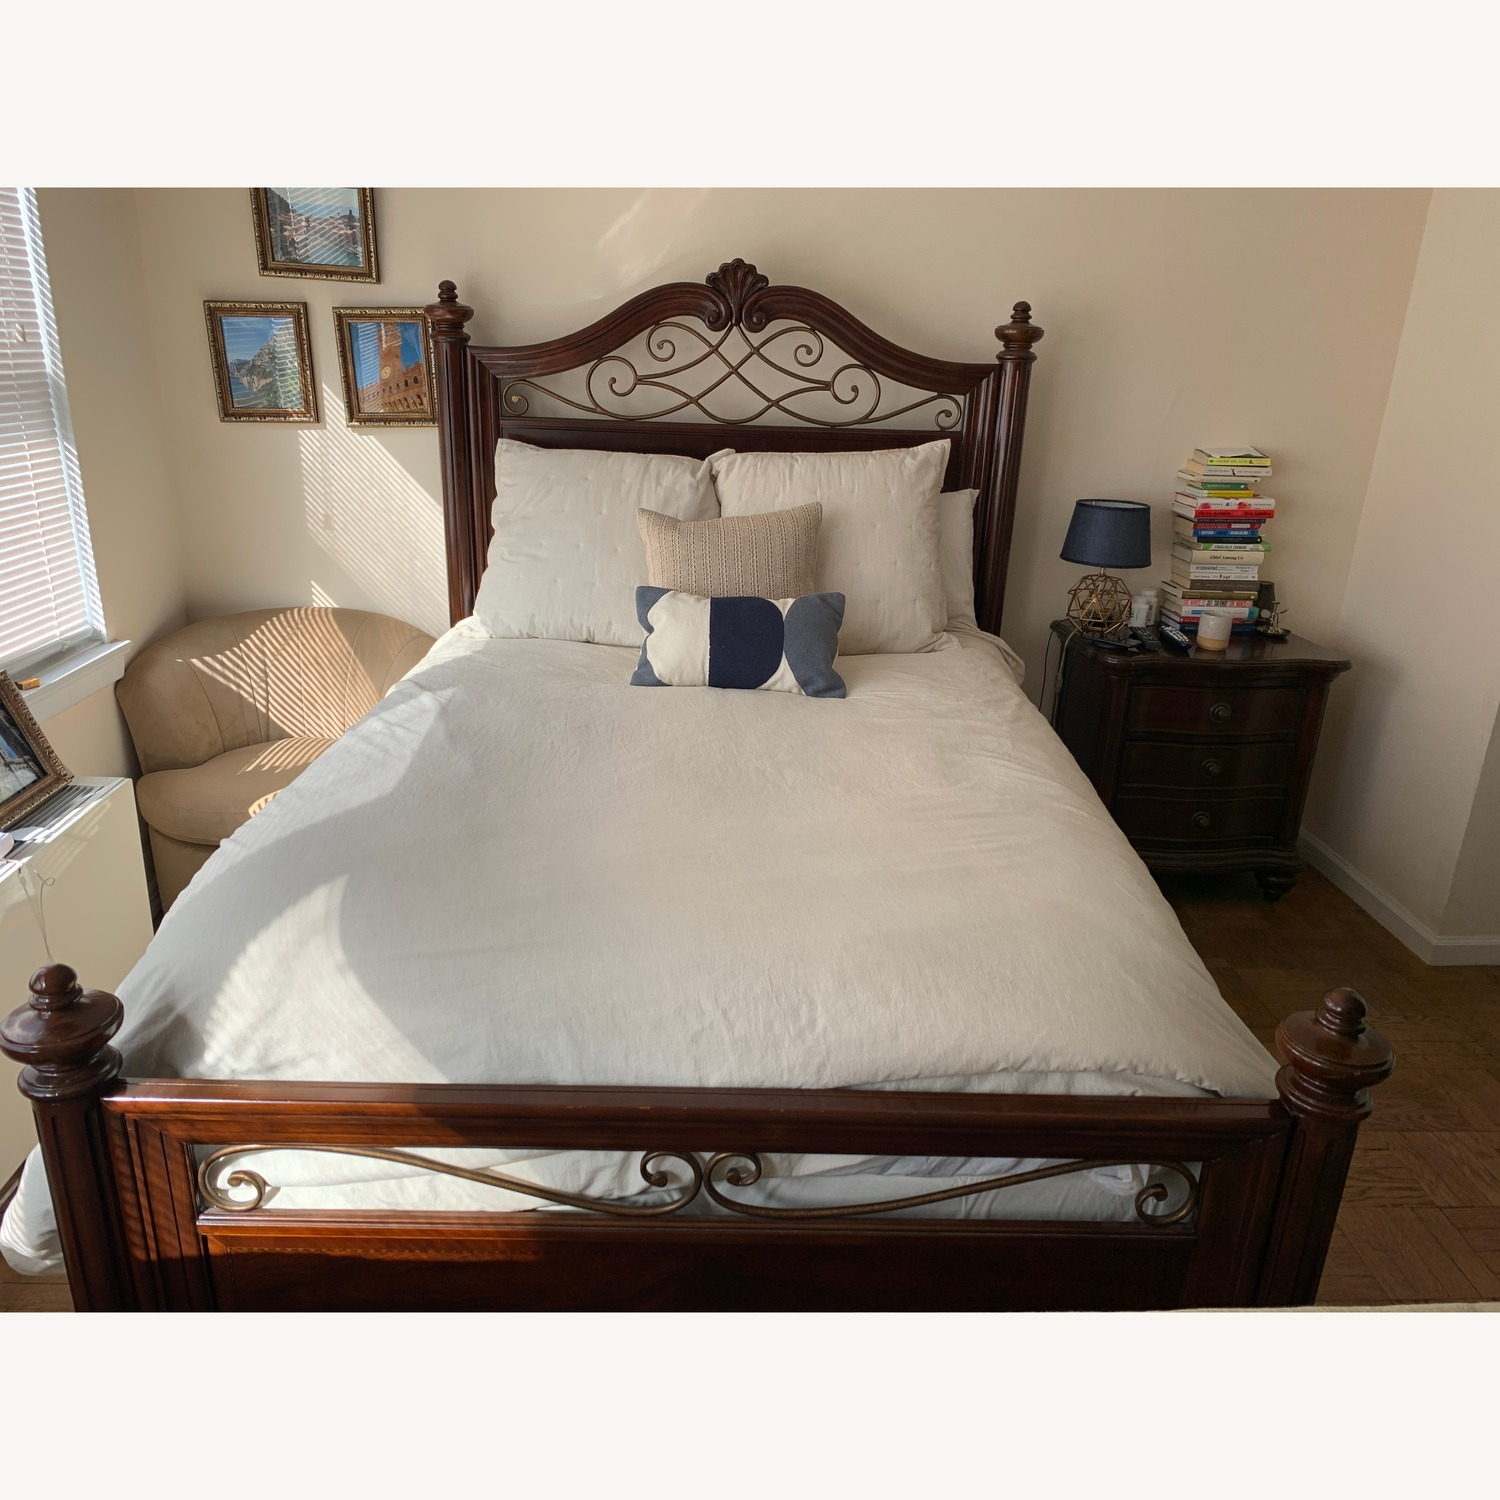 Raymour & Flanigan Queen Bed Wood Frame - AptDeco